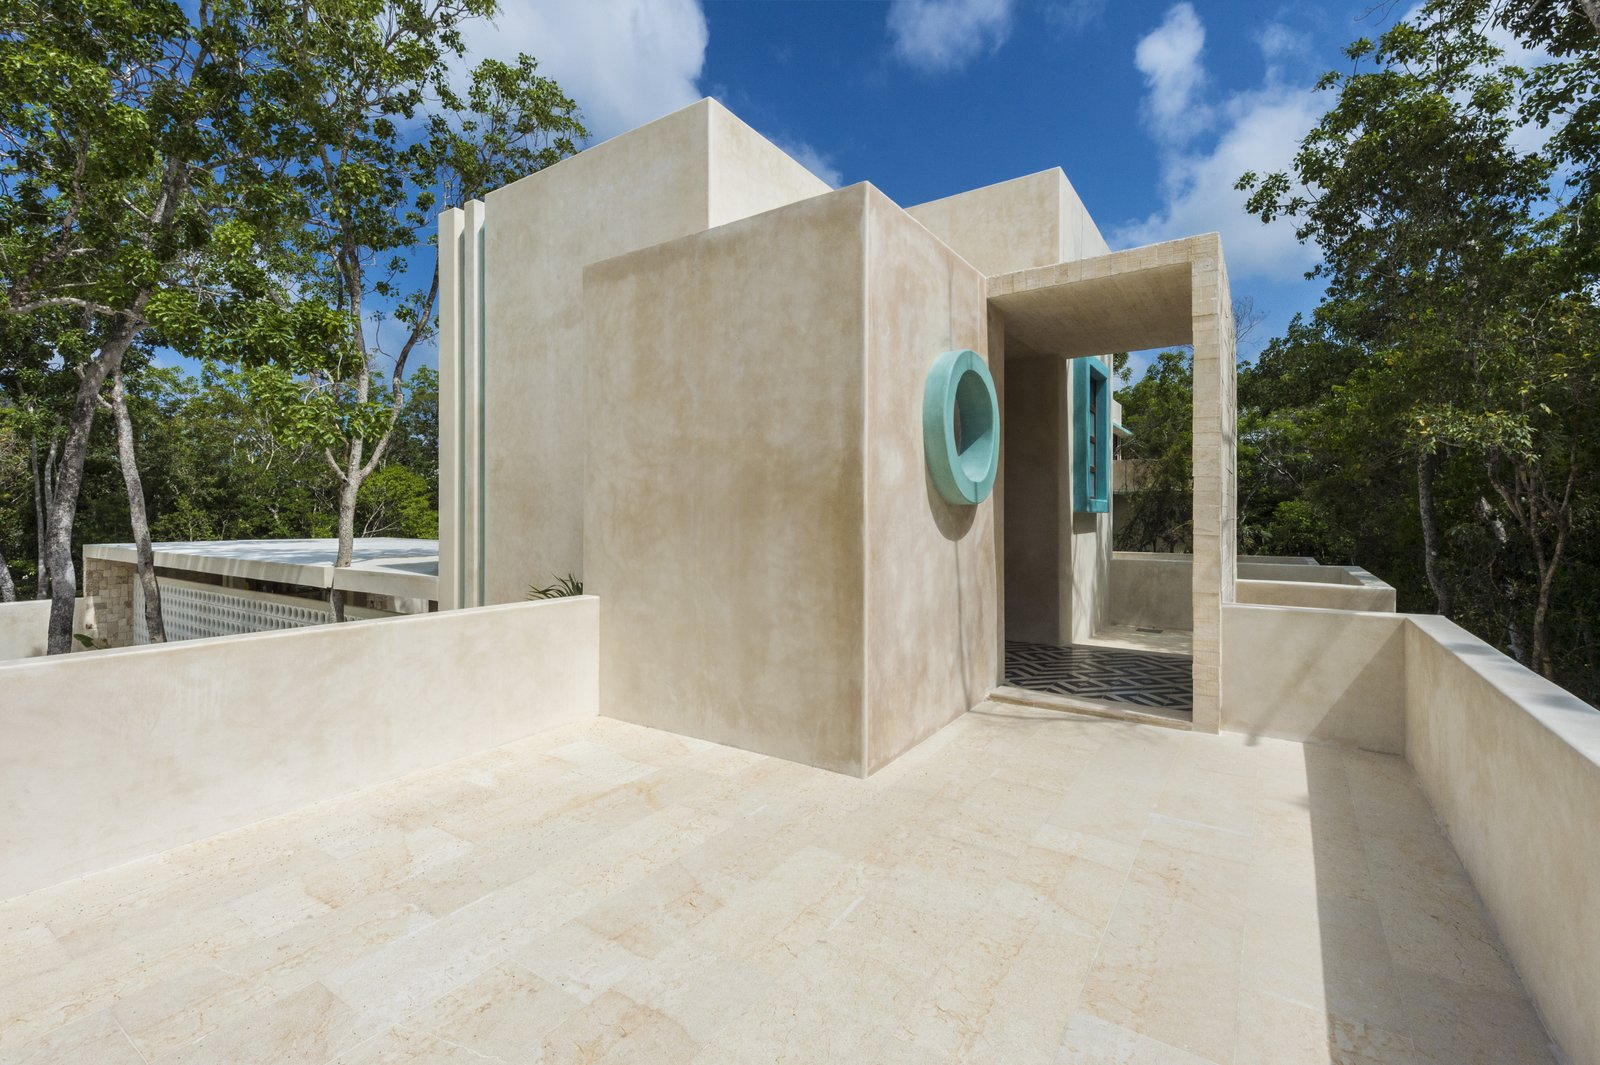 Outdoor, Trees, and Rooftop  Photo 9 of 9 in A New Modern Hotel Brings Midcentury Miami to Tulum, Mexico